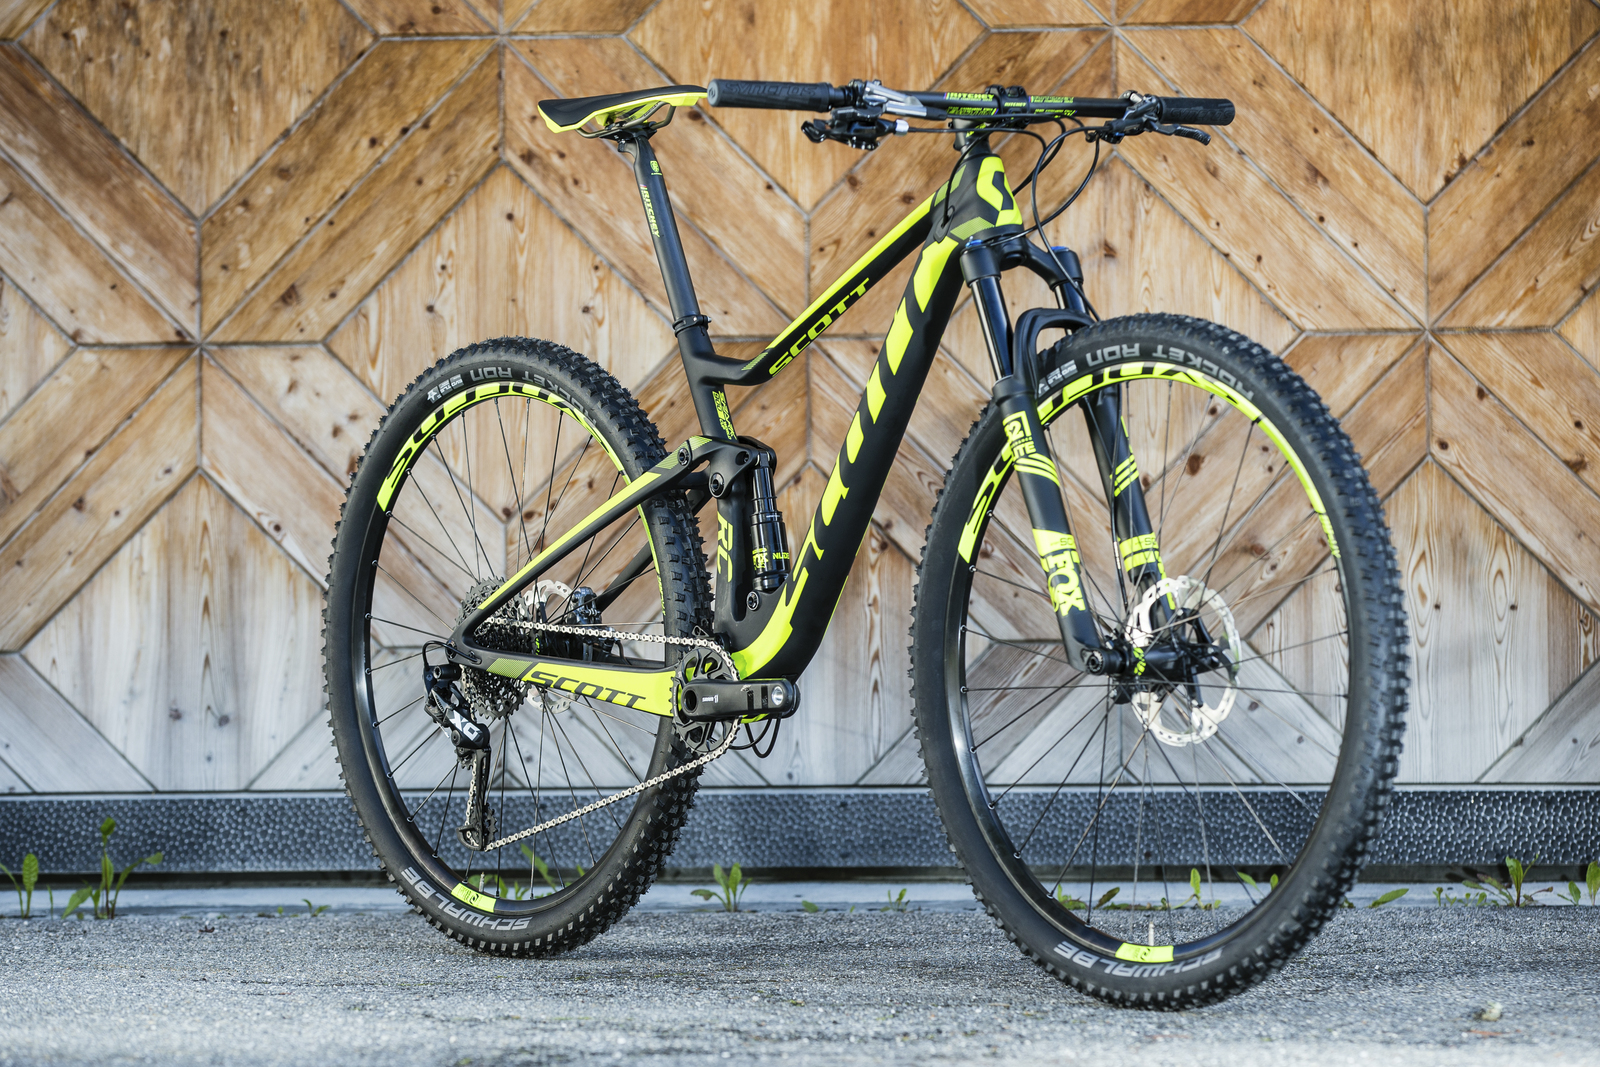 2d88d08dc41 The Spark RC 900 is an XC bike that can pull